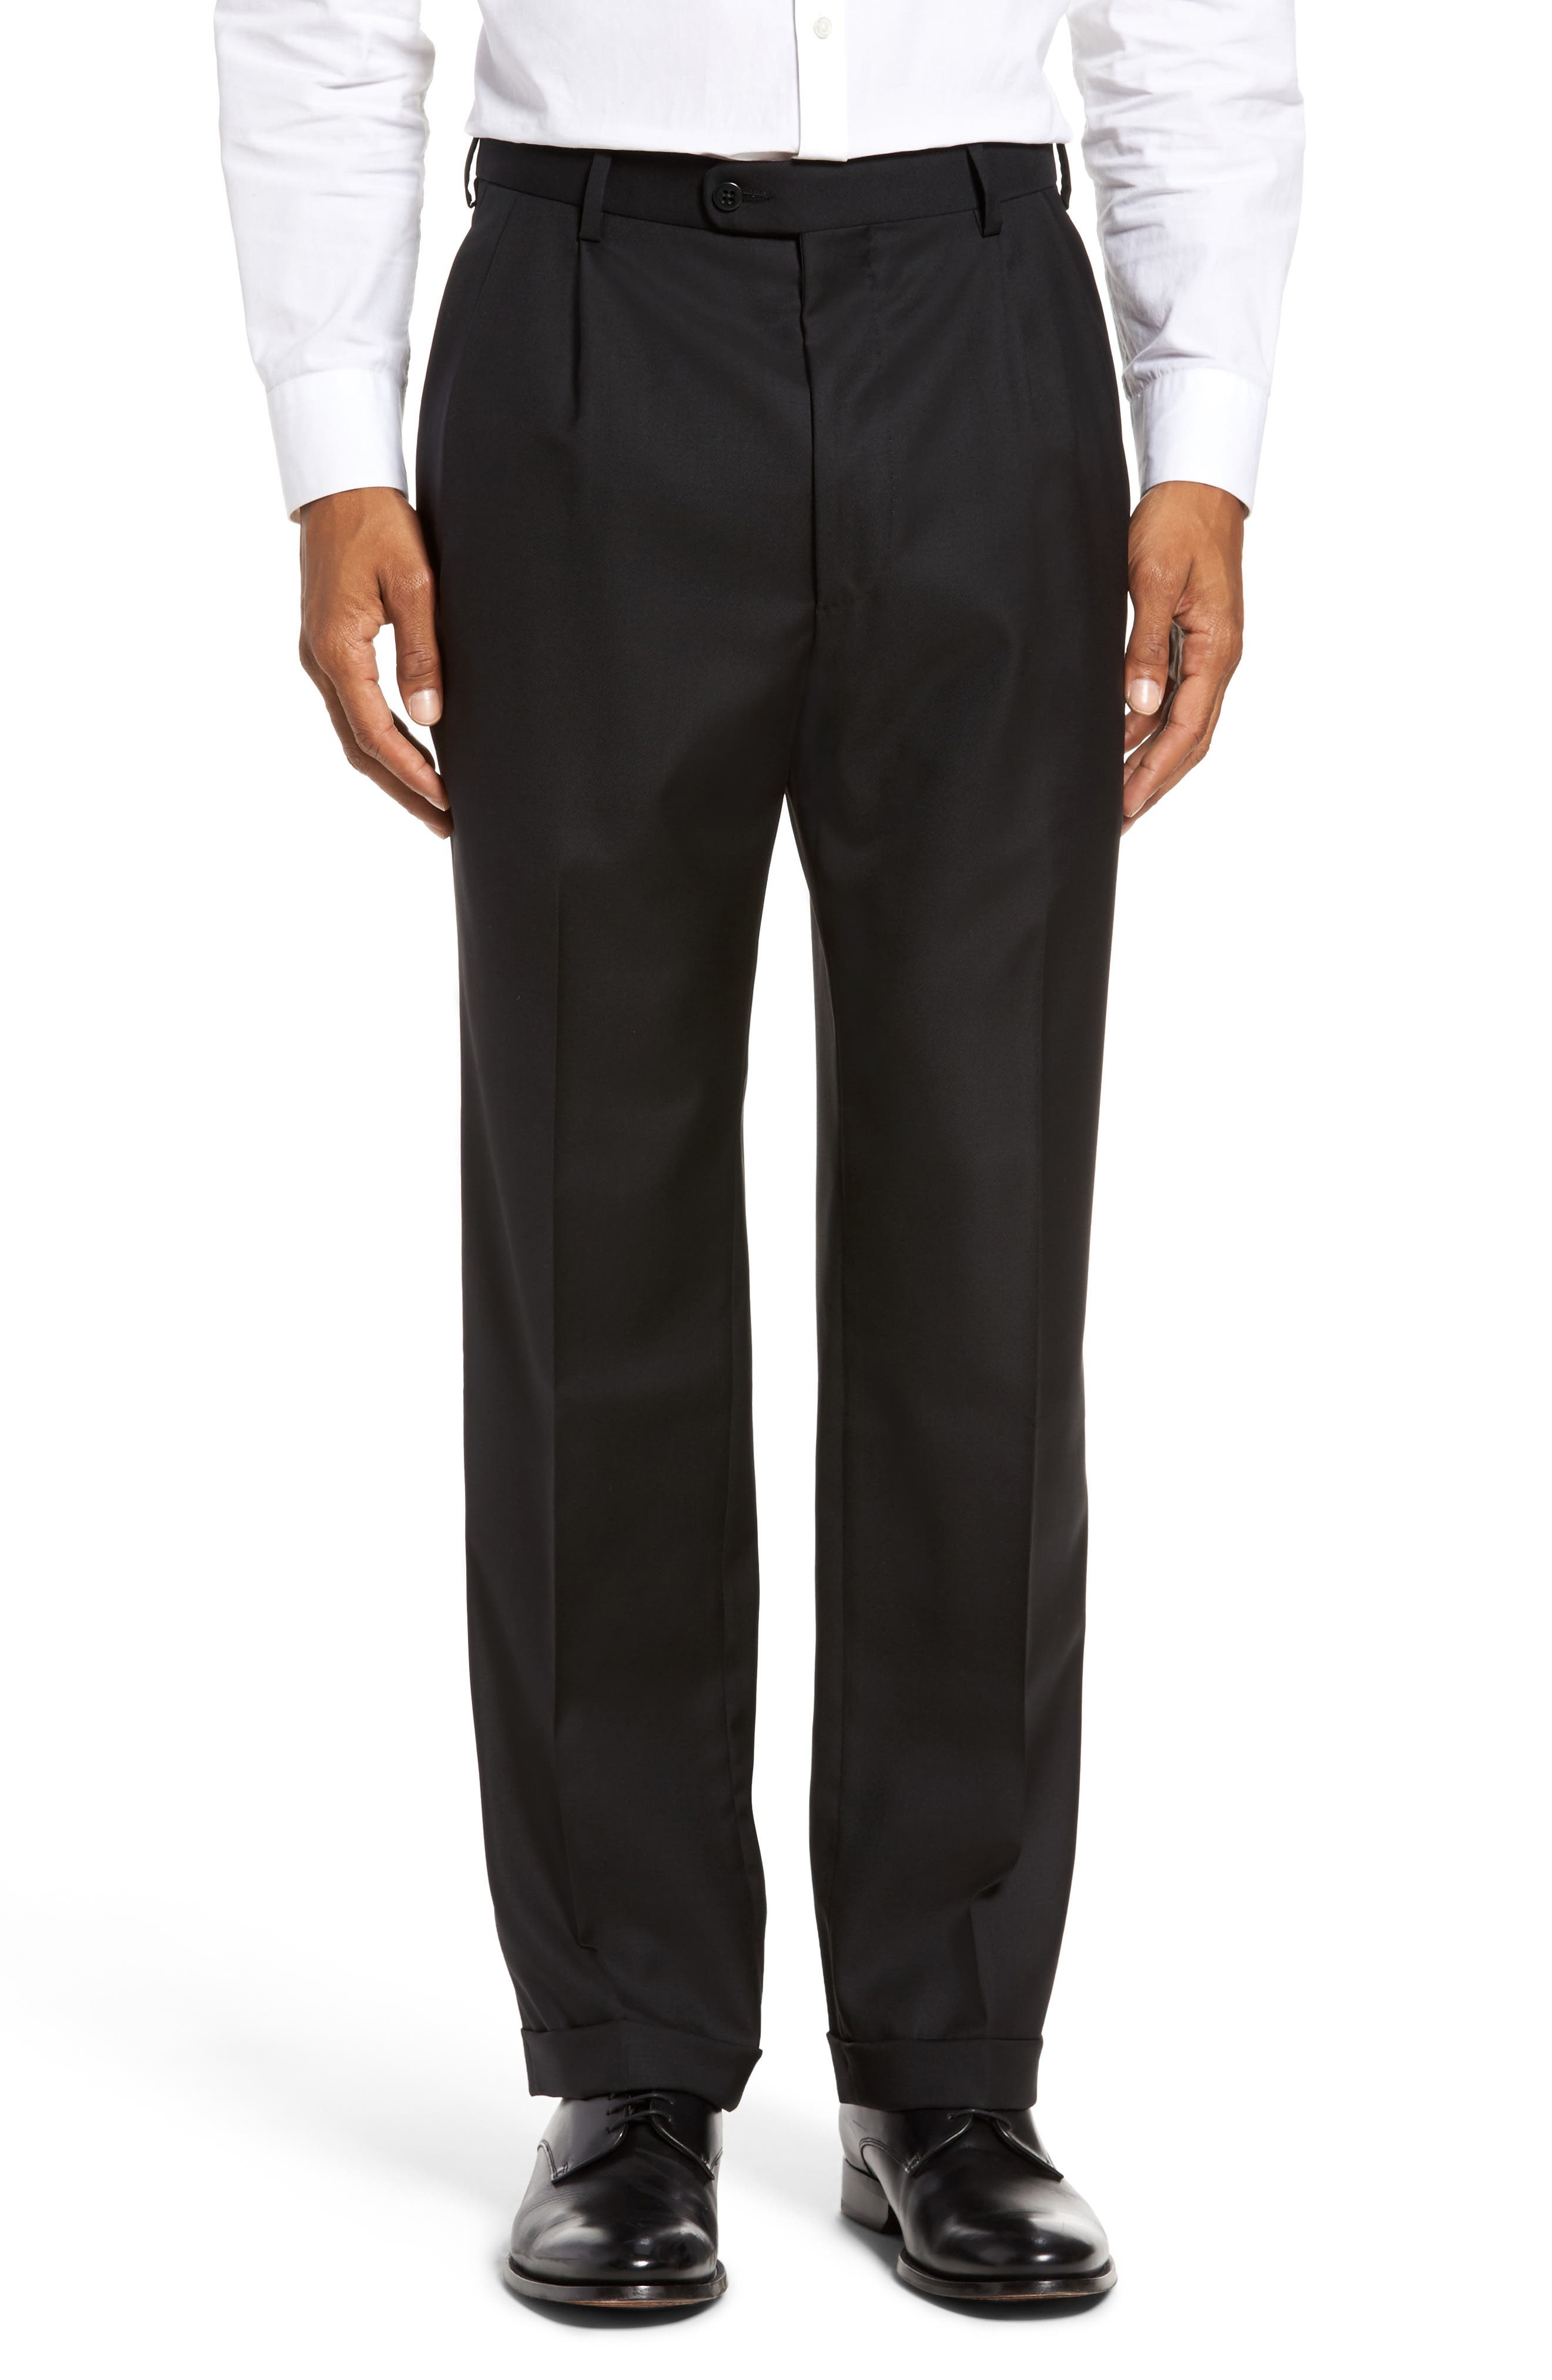 Bennett Regular Fit Pleated Trousers,                         Main,                         color, Black